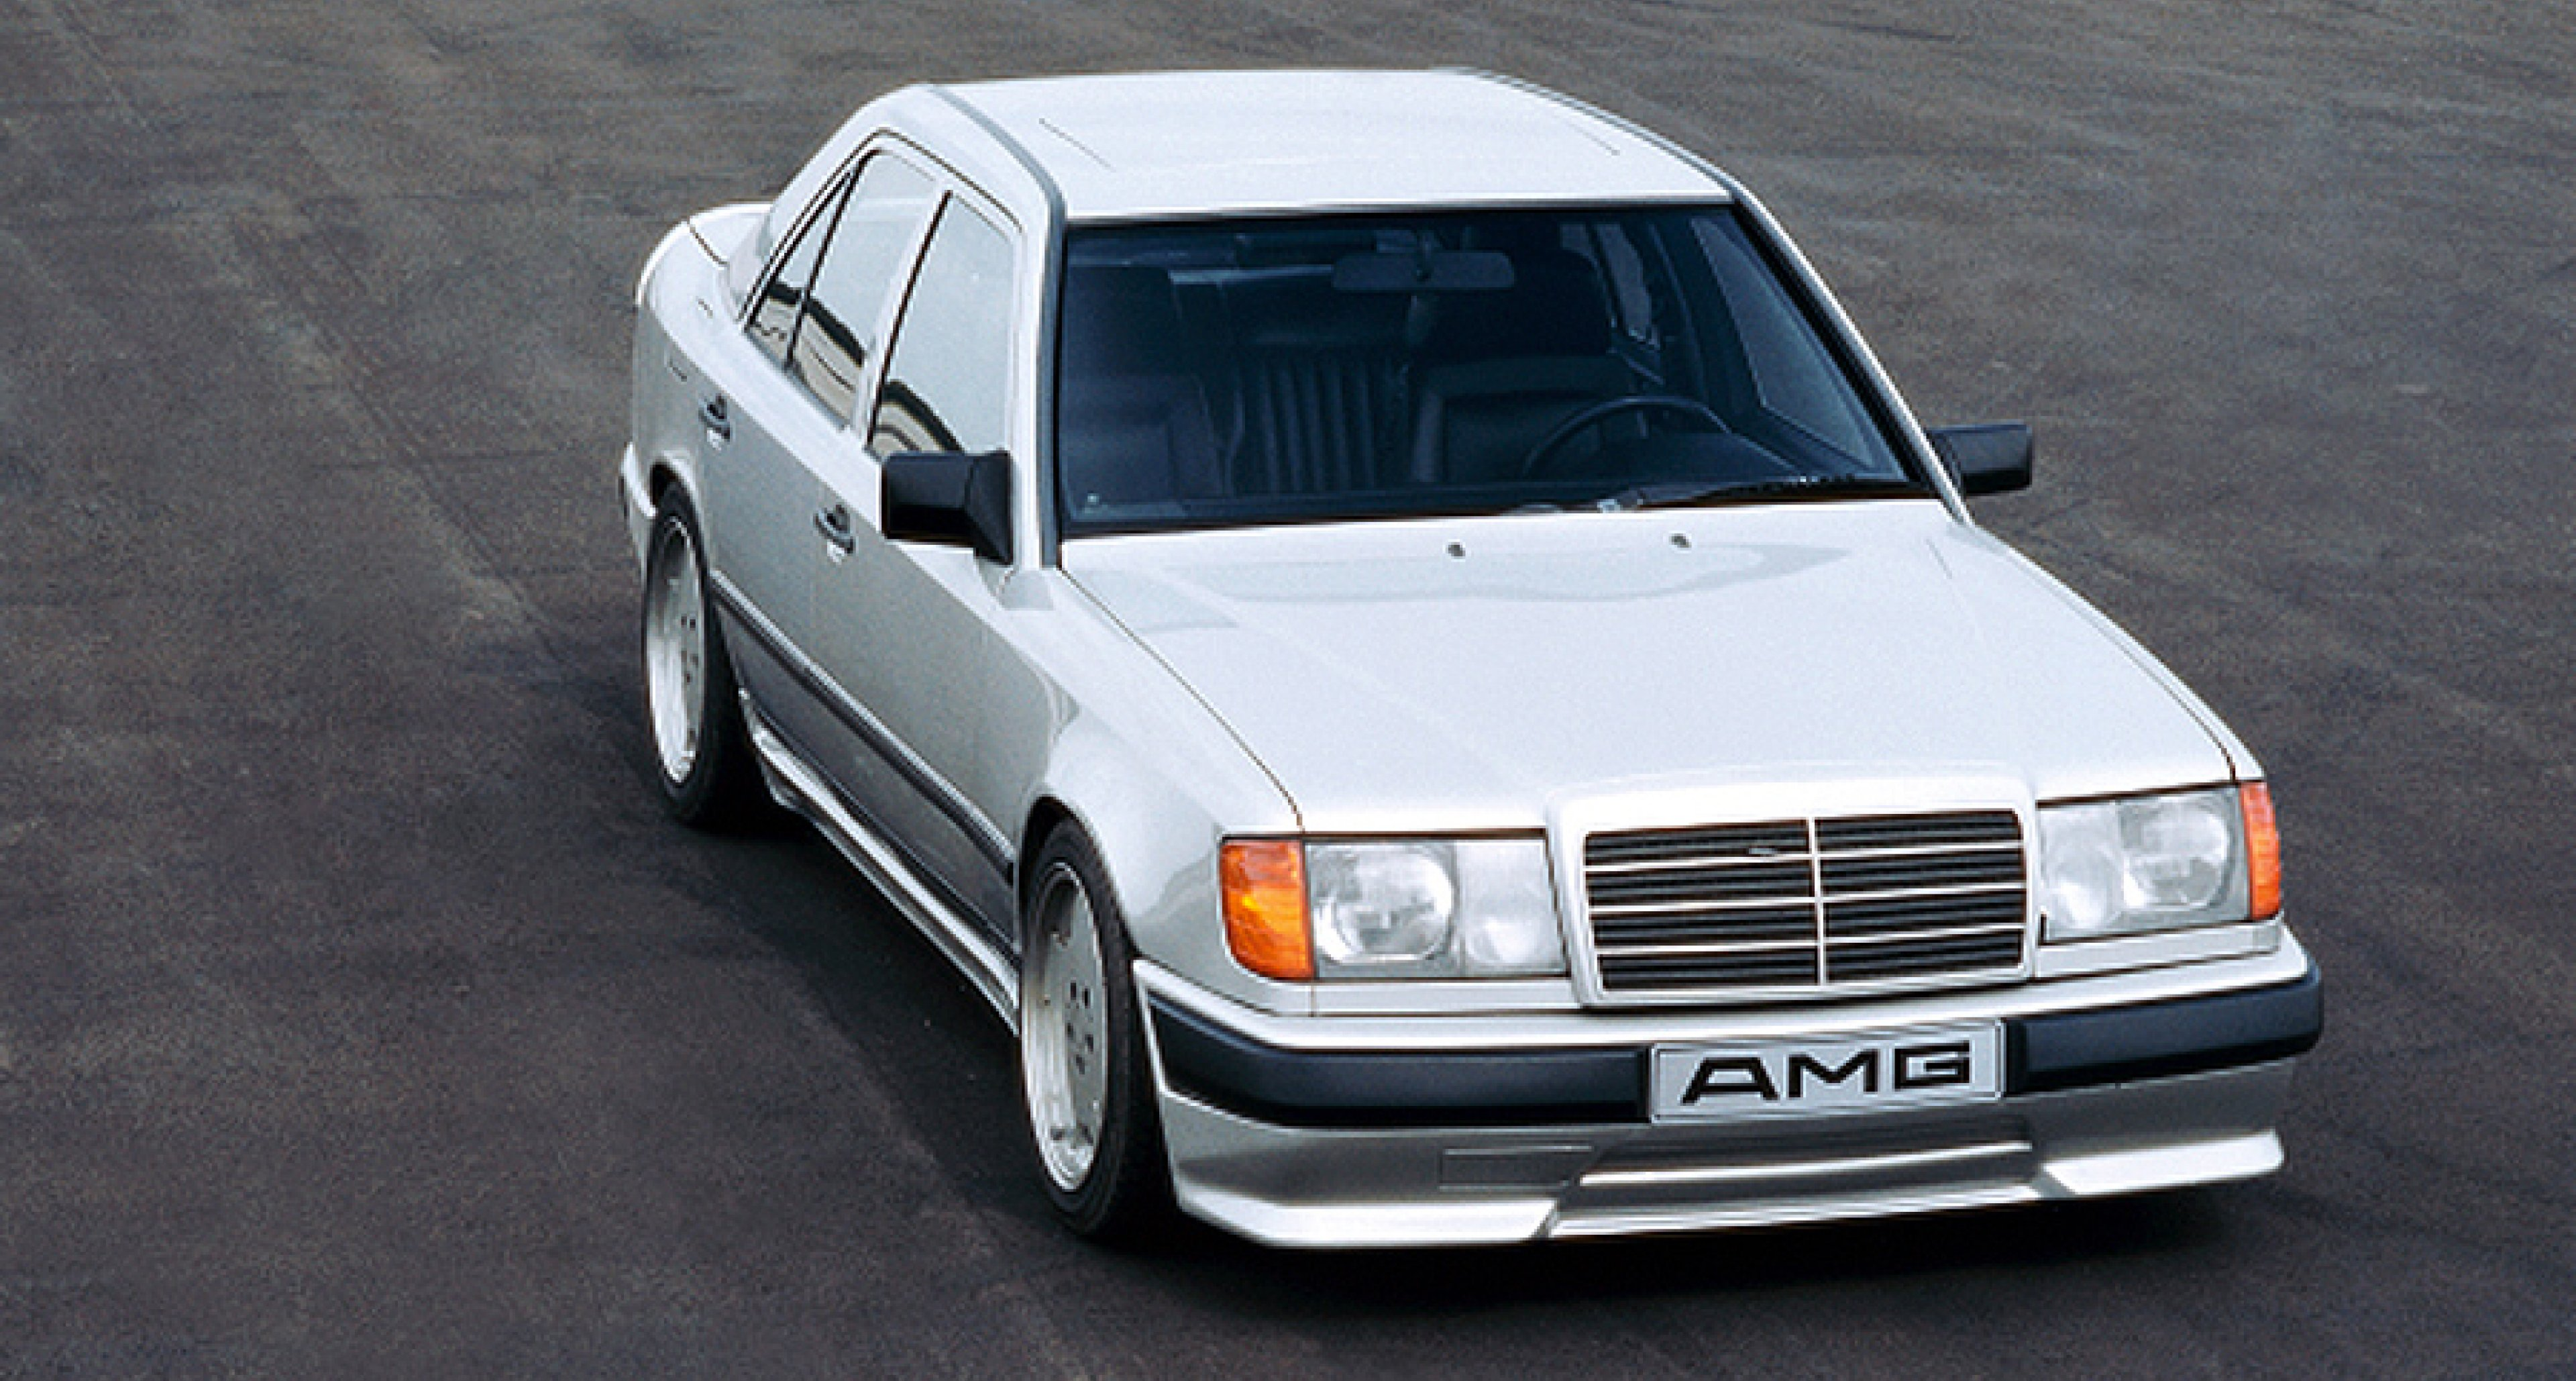 Mercedes Benz 300ce W124 050 1991 furthermore 3 moreover Mercedes W123 Repair Ifixit in addition Tuning Middle Classes Early Amg Saloons also Mercedes Benz Cl500 W215 Slammed D2forged Vs7 Wheels. on bbs on mercedes w124